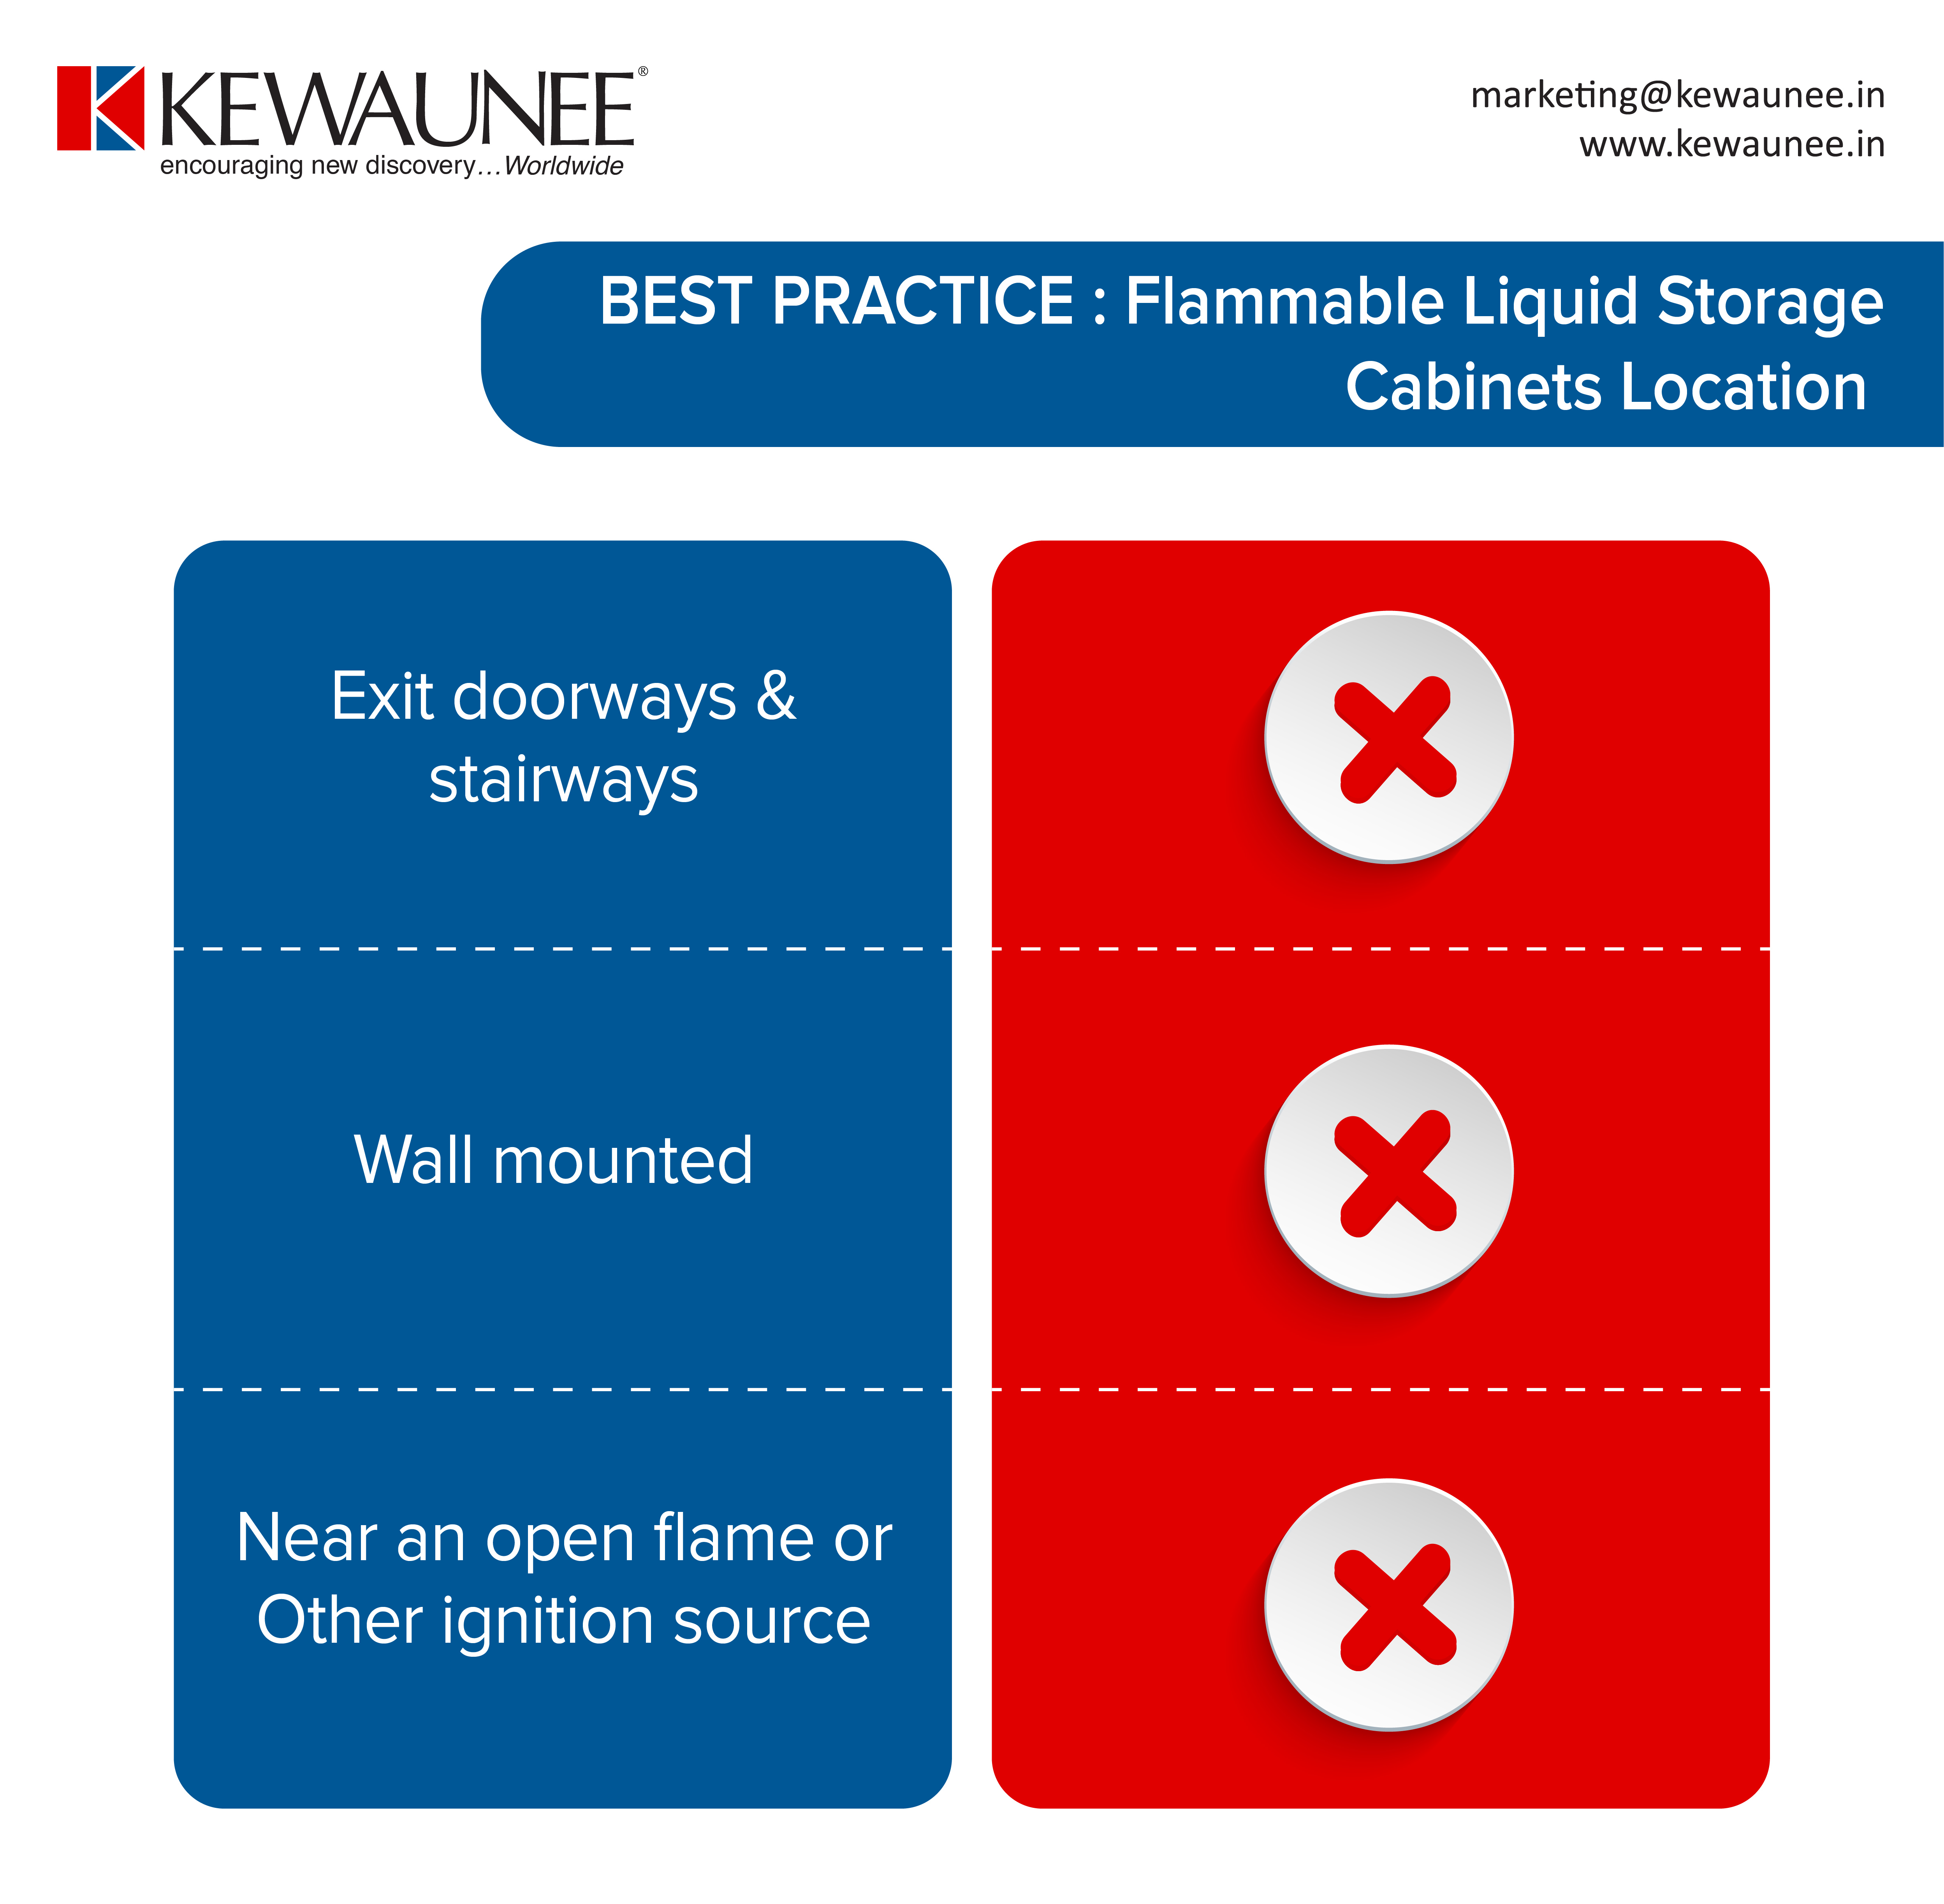 Flammable Safety Cabinets Location